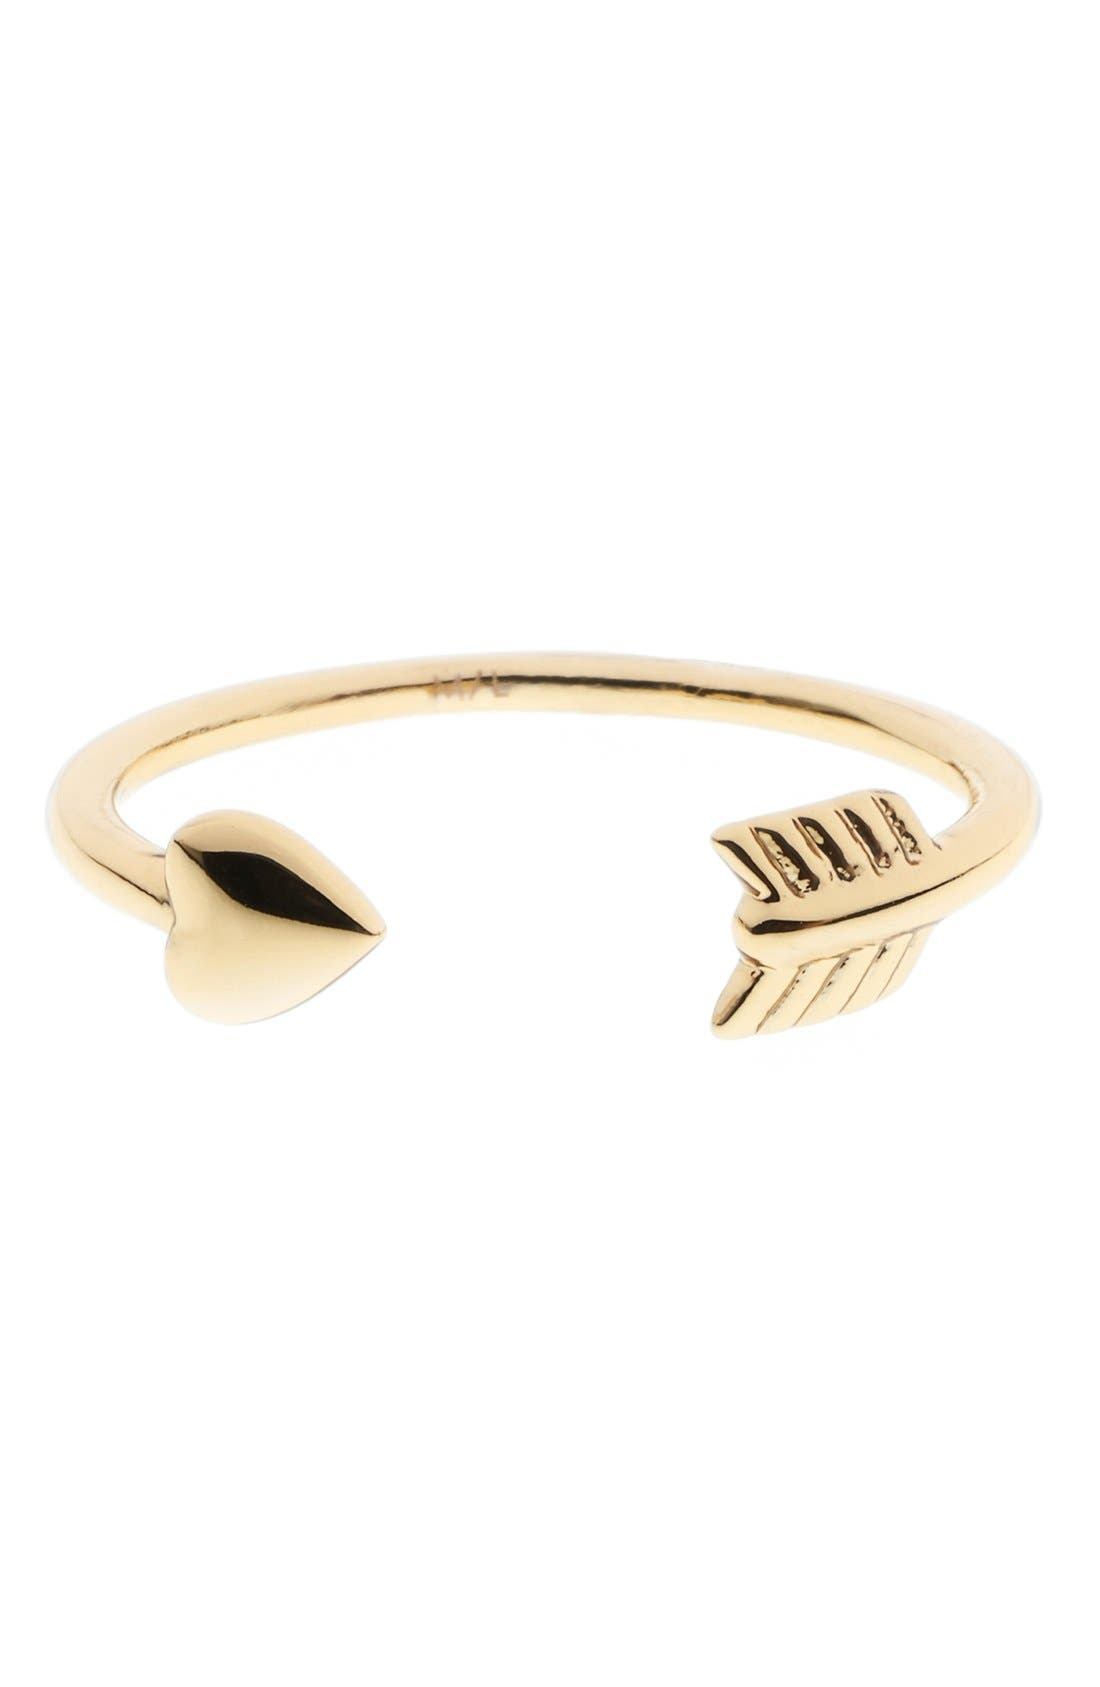 Alternate Image 1 Selected - Ted Baker London 'Cupid's Arrow' Open Ring